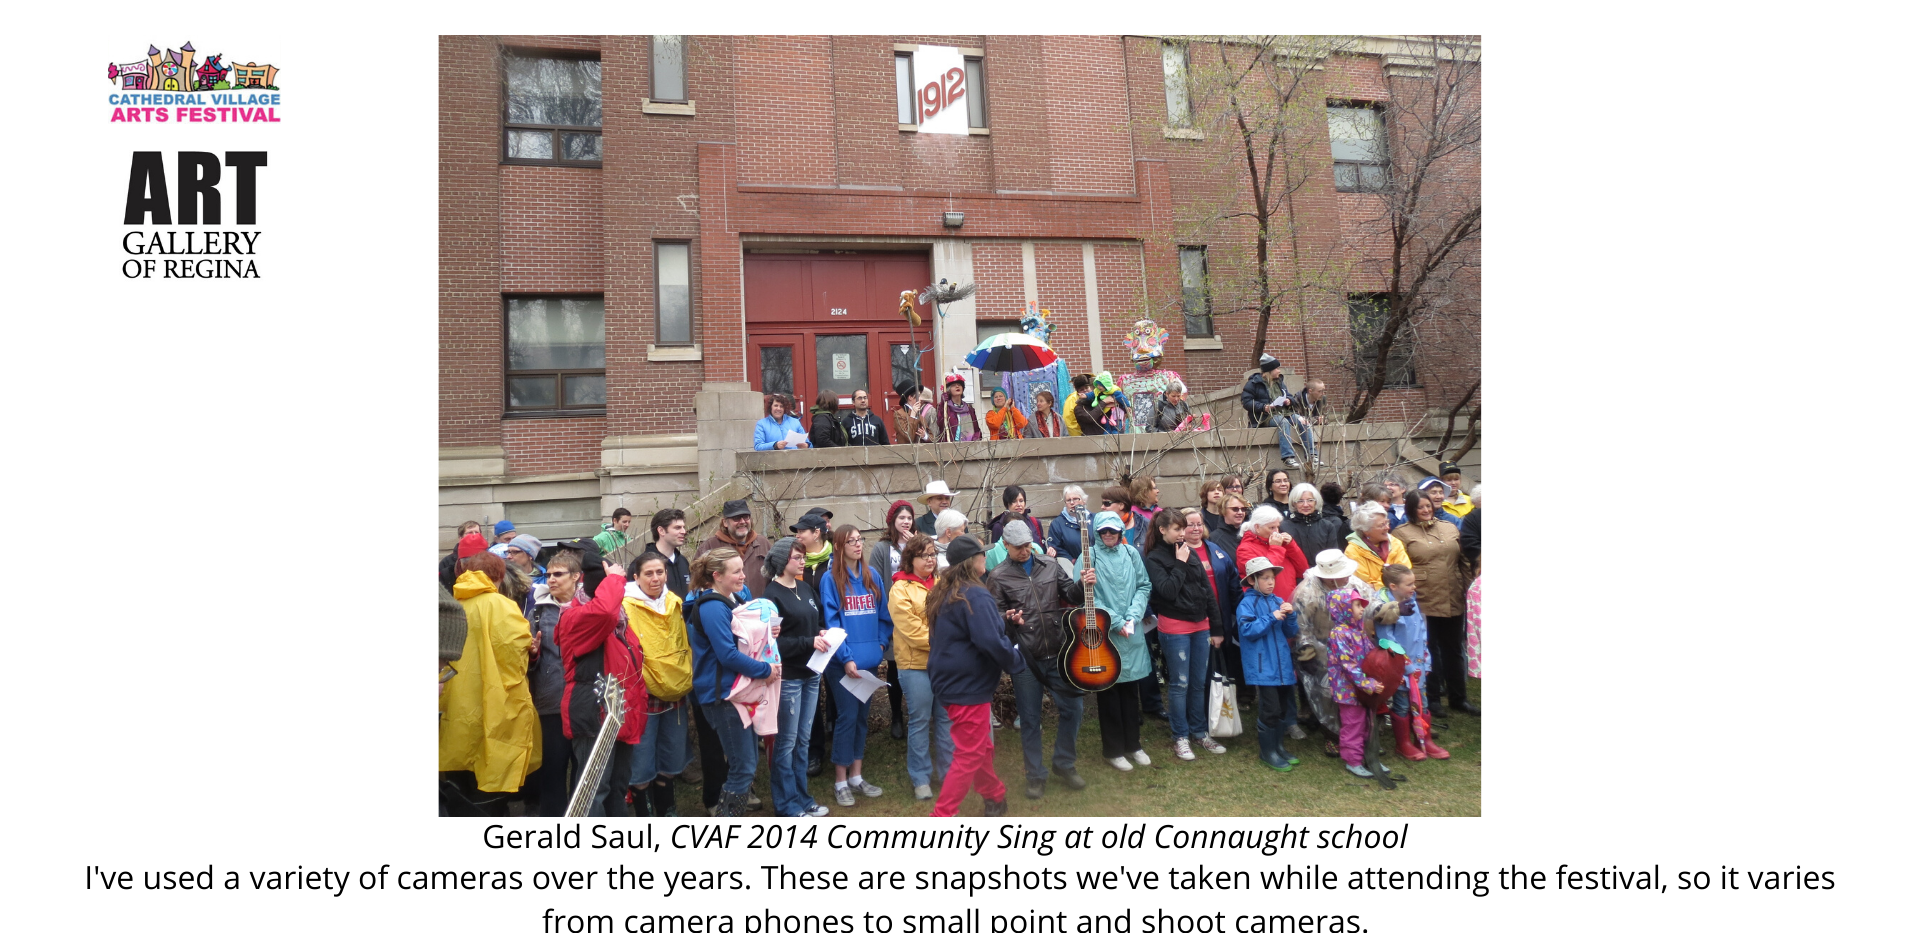 Gerald Saul, CVAF 2014 Community Sing at old Connaught school